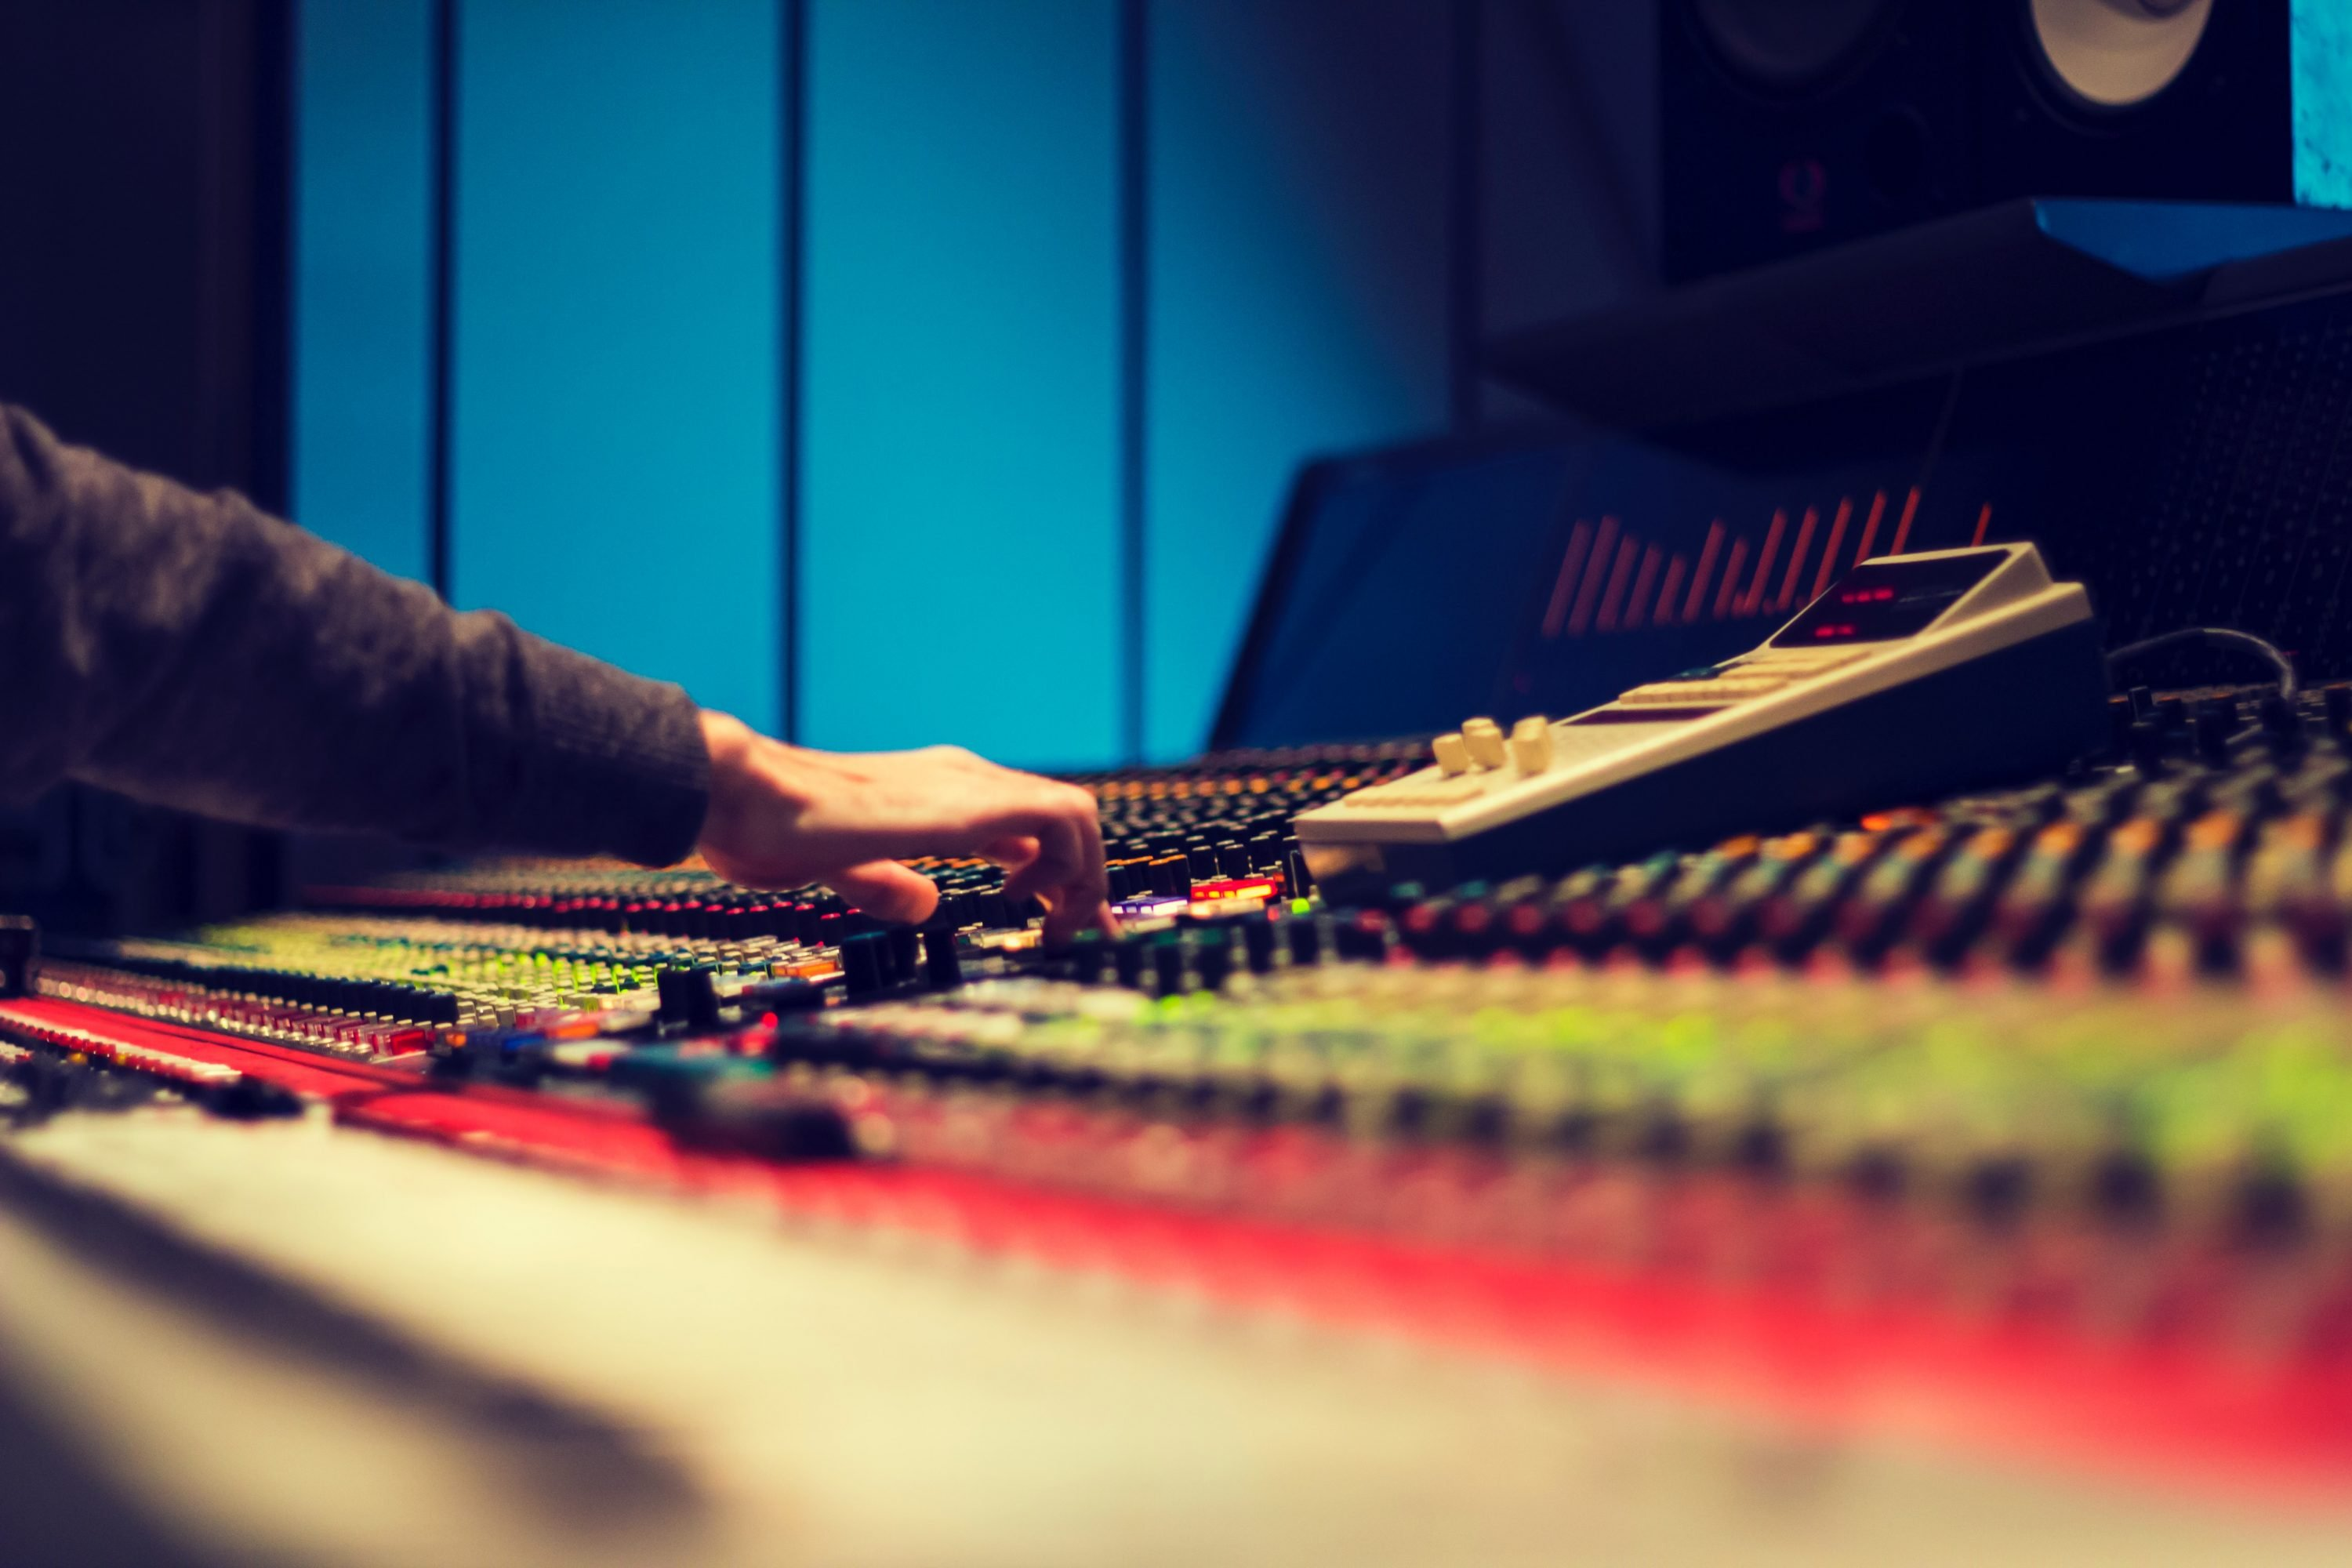 Close up image of sound engineer's hands moving dials on mixing and mastering console.